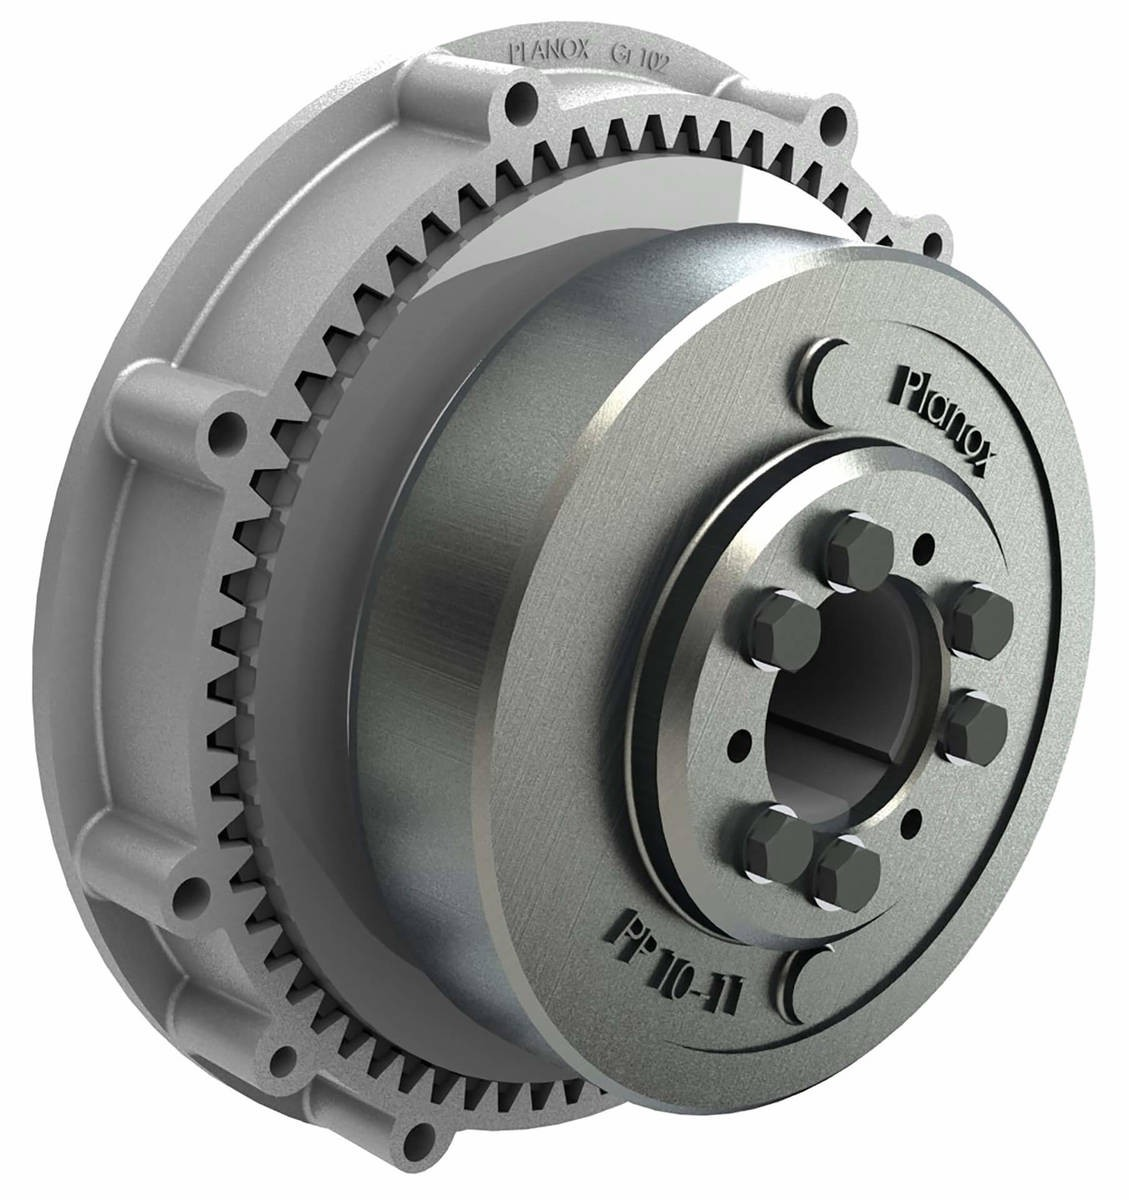 Desch Planox® PP switched on pneumatically  Multi Plate Friction Clutch Image